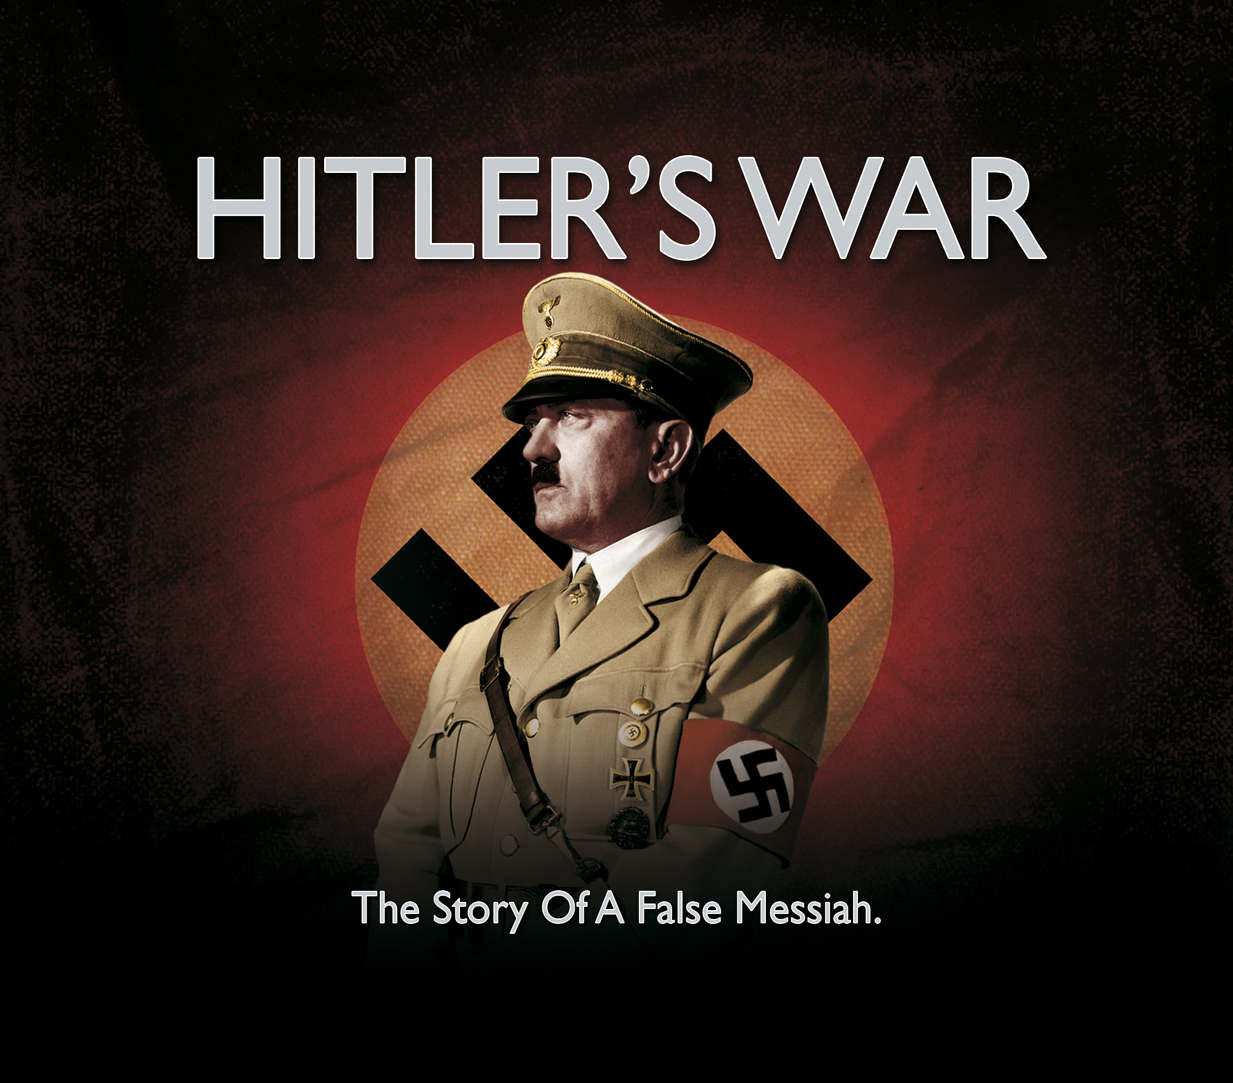 Hitler's War: The Story Of A False Messiah